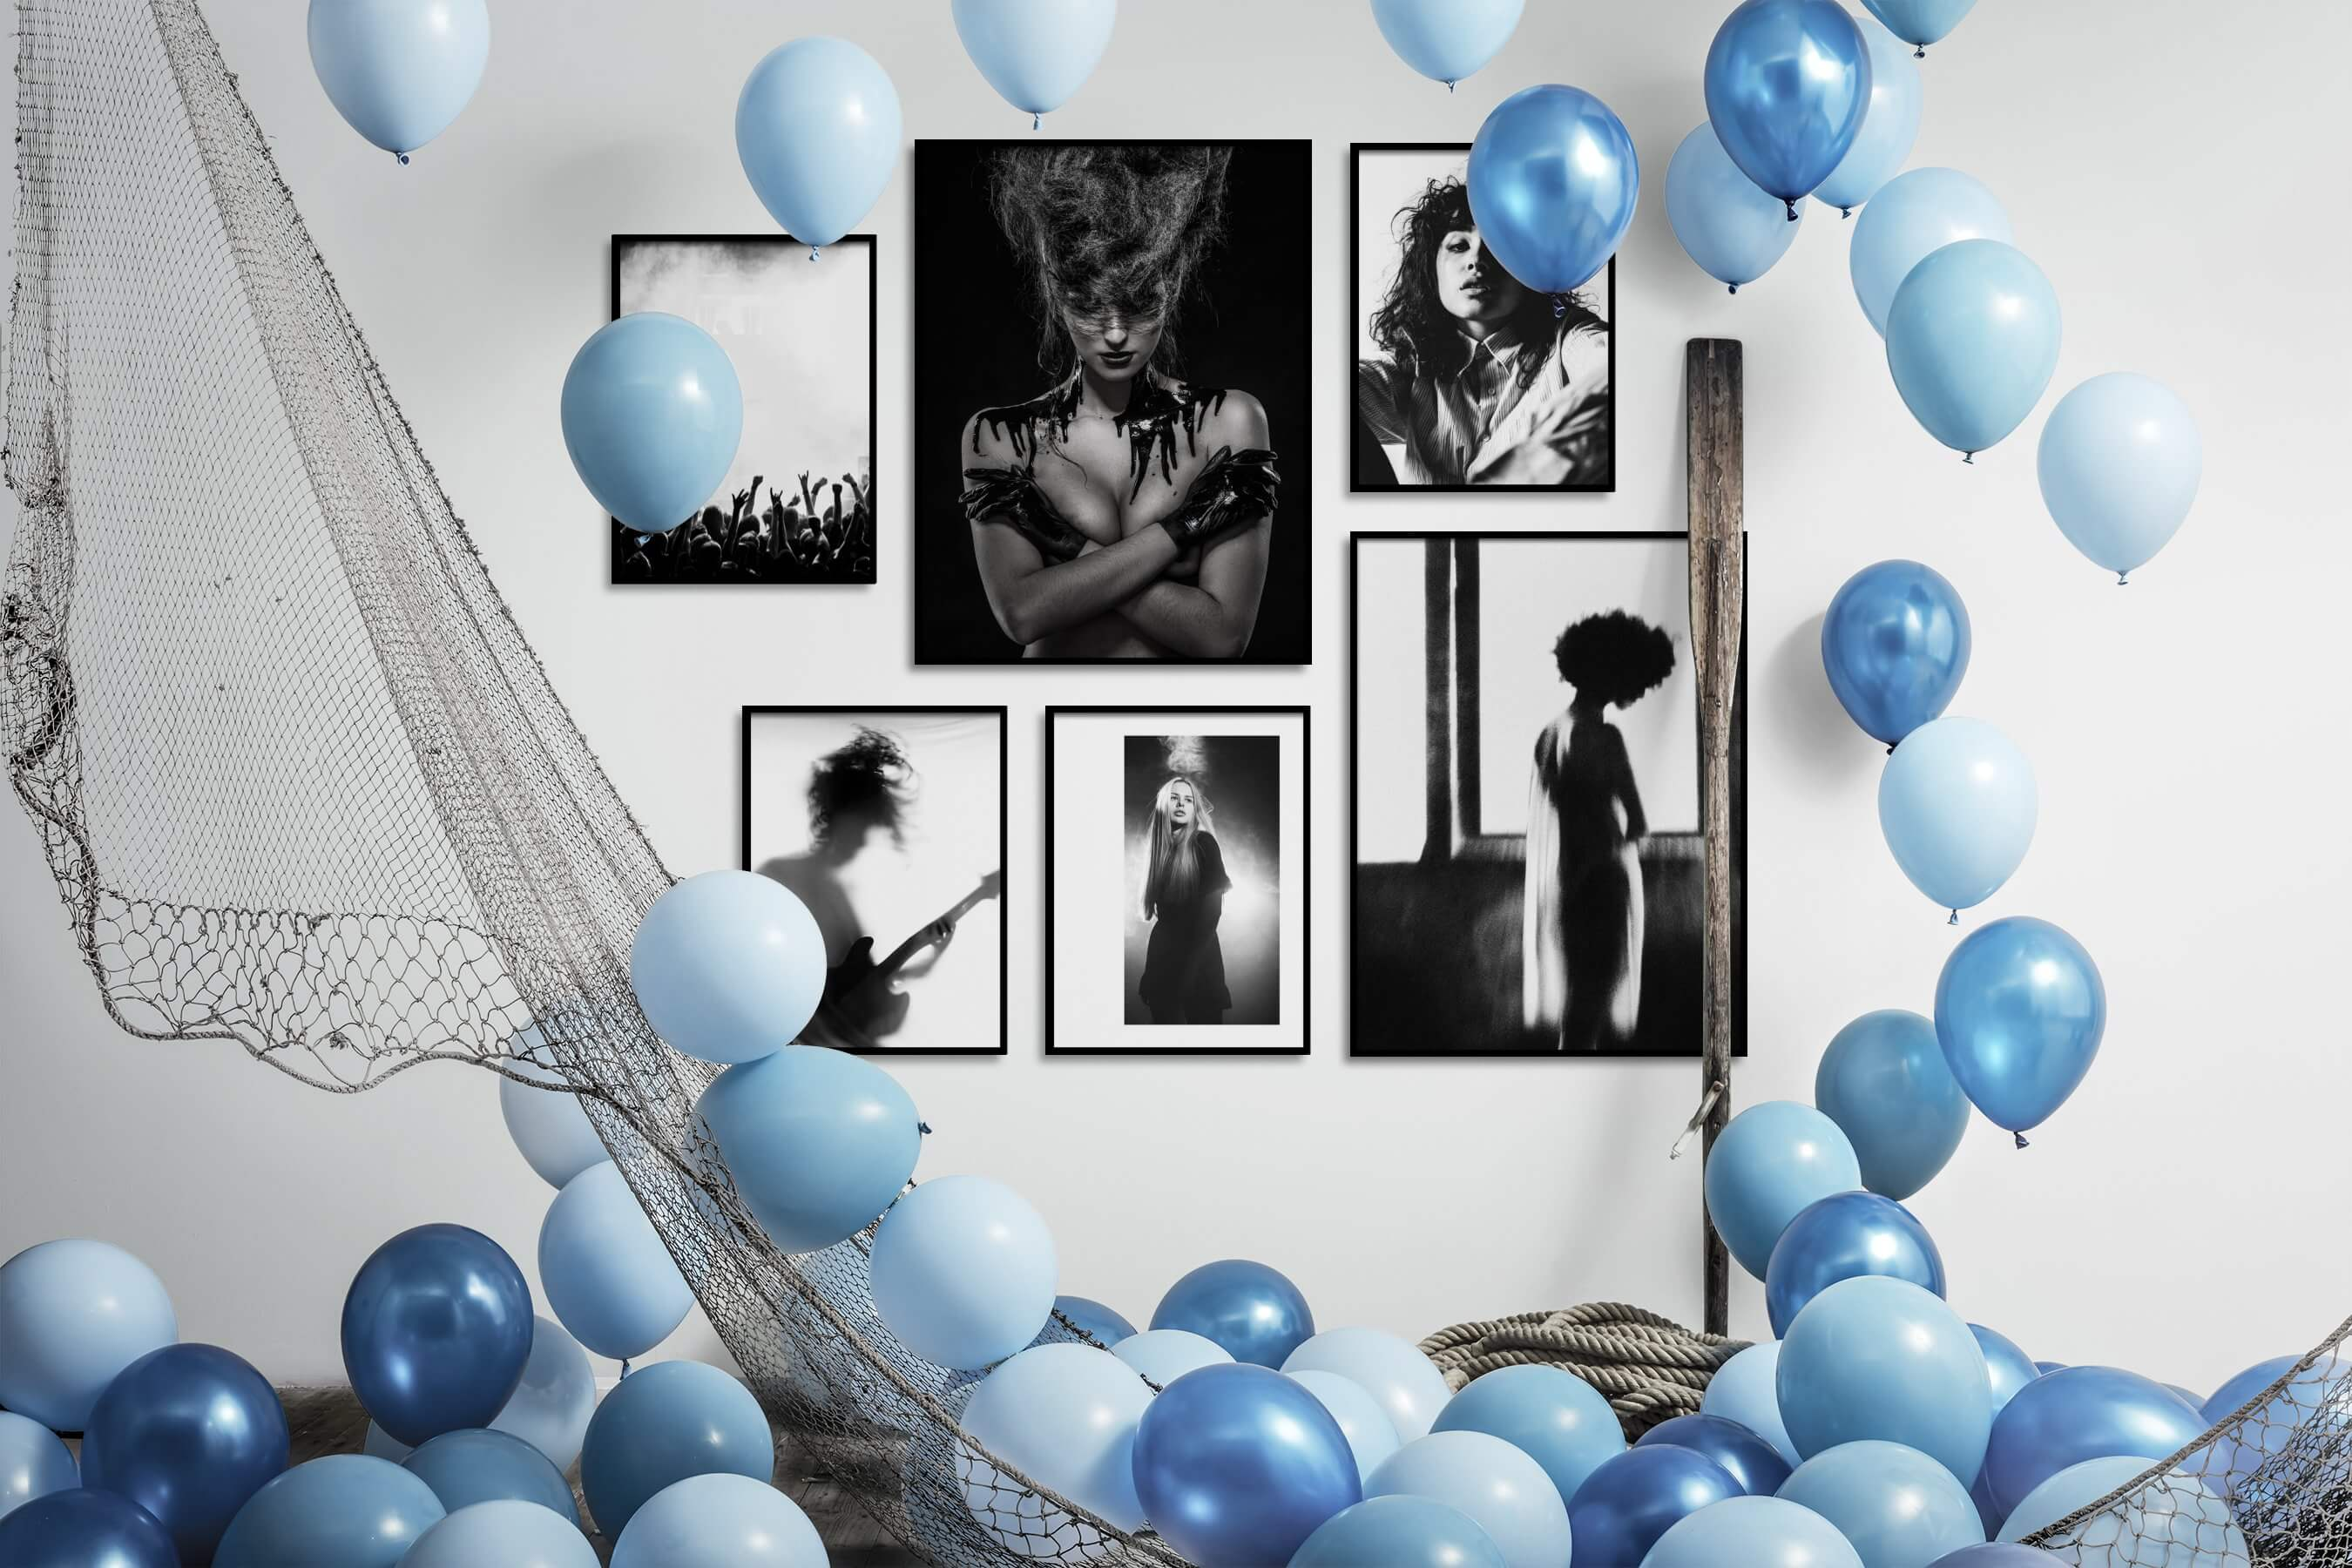 Gallery wall idea with six framed pictures arranged on a wall depicting Black & White, For the Moderate, Fashion & Beauty, and Dark Tones